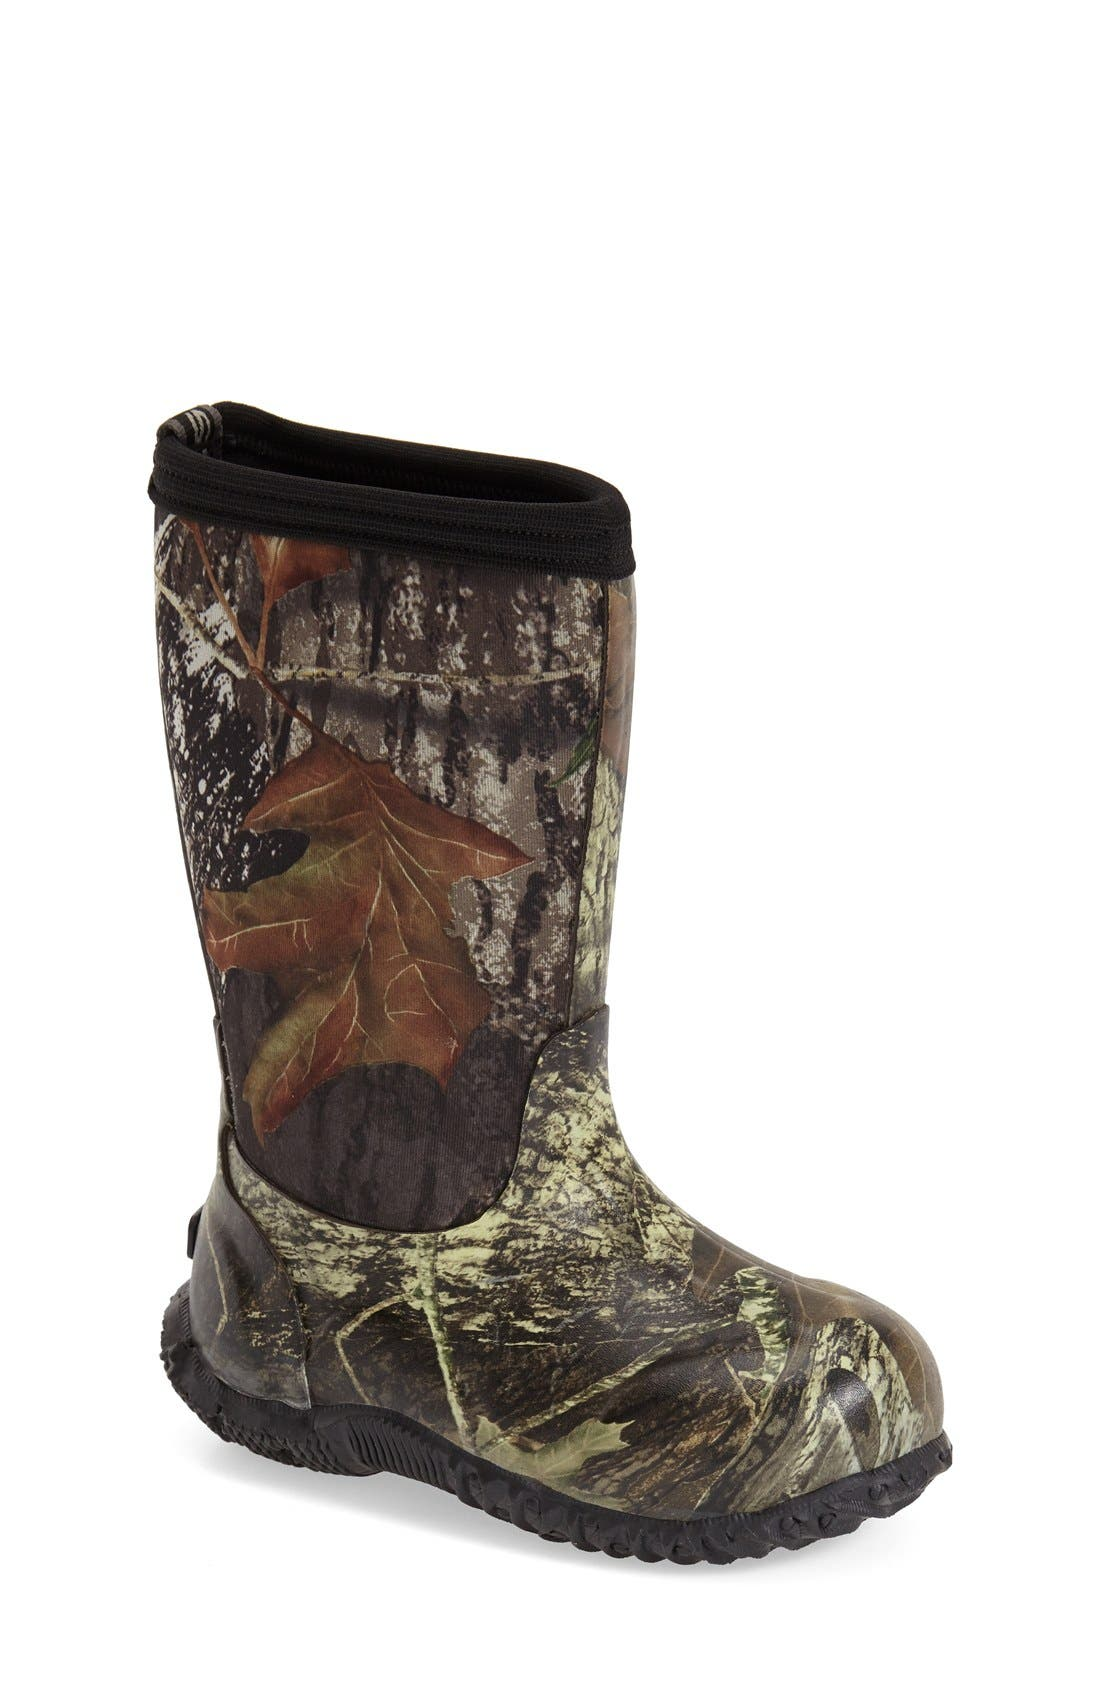 Classic High Insulated Waterproof Boot,                             Main thumbnail 1, color,                             MOSSY OAK